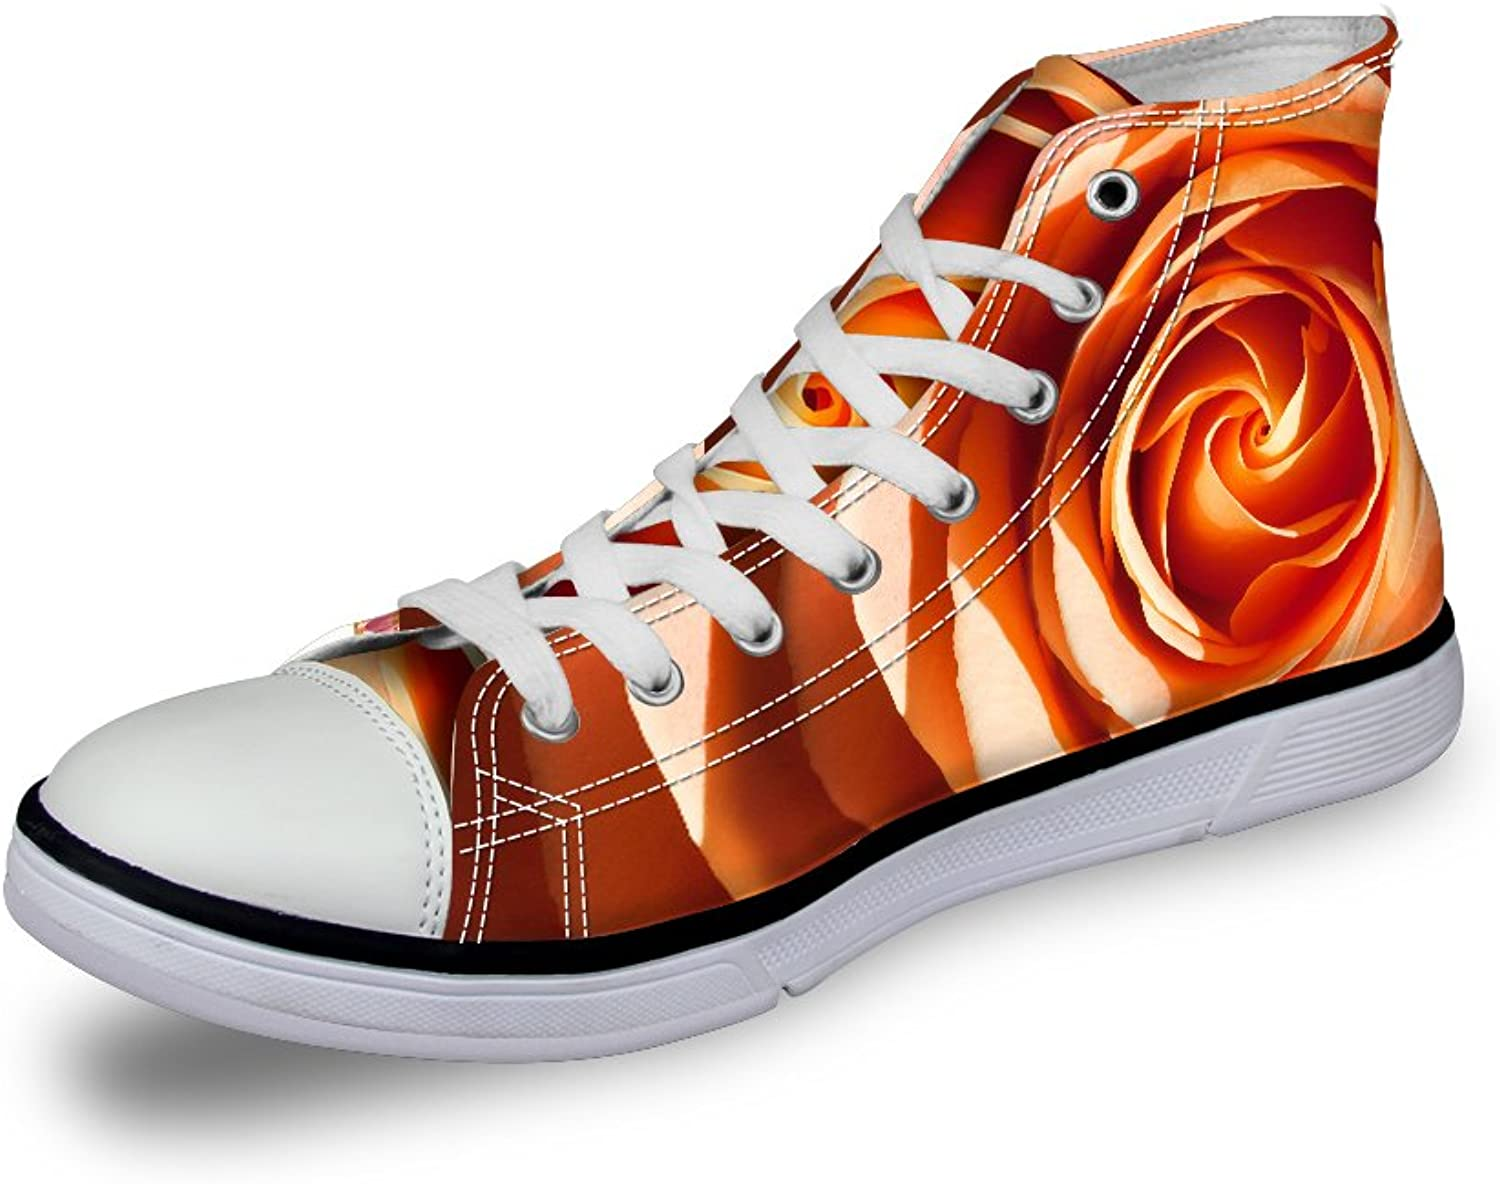 Frestree Vintage Sneakers for Women Tennis Athletic shoes